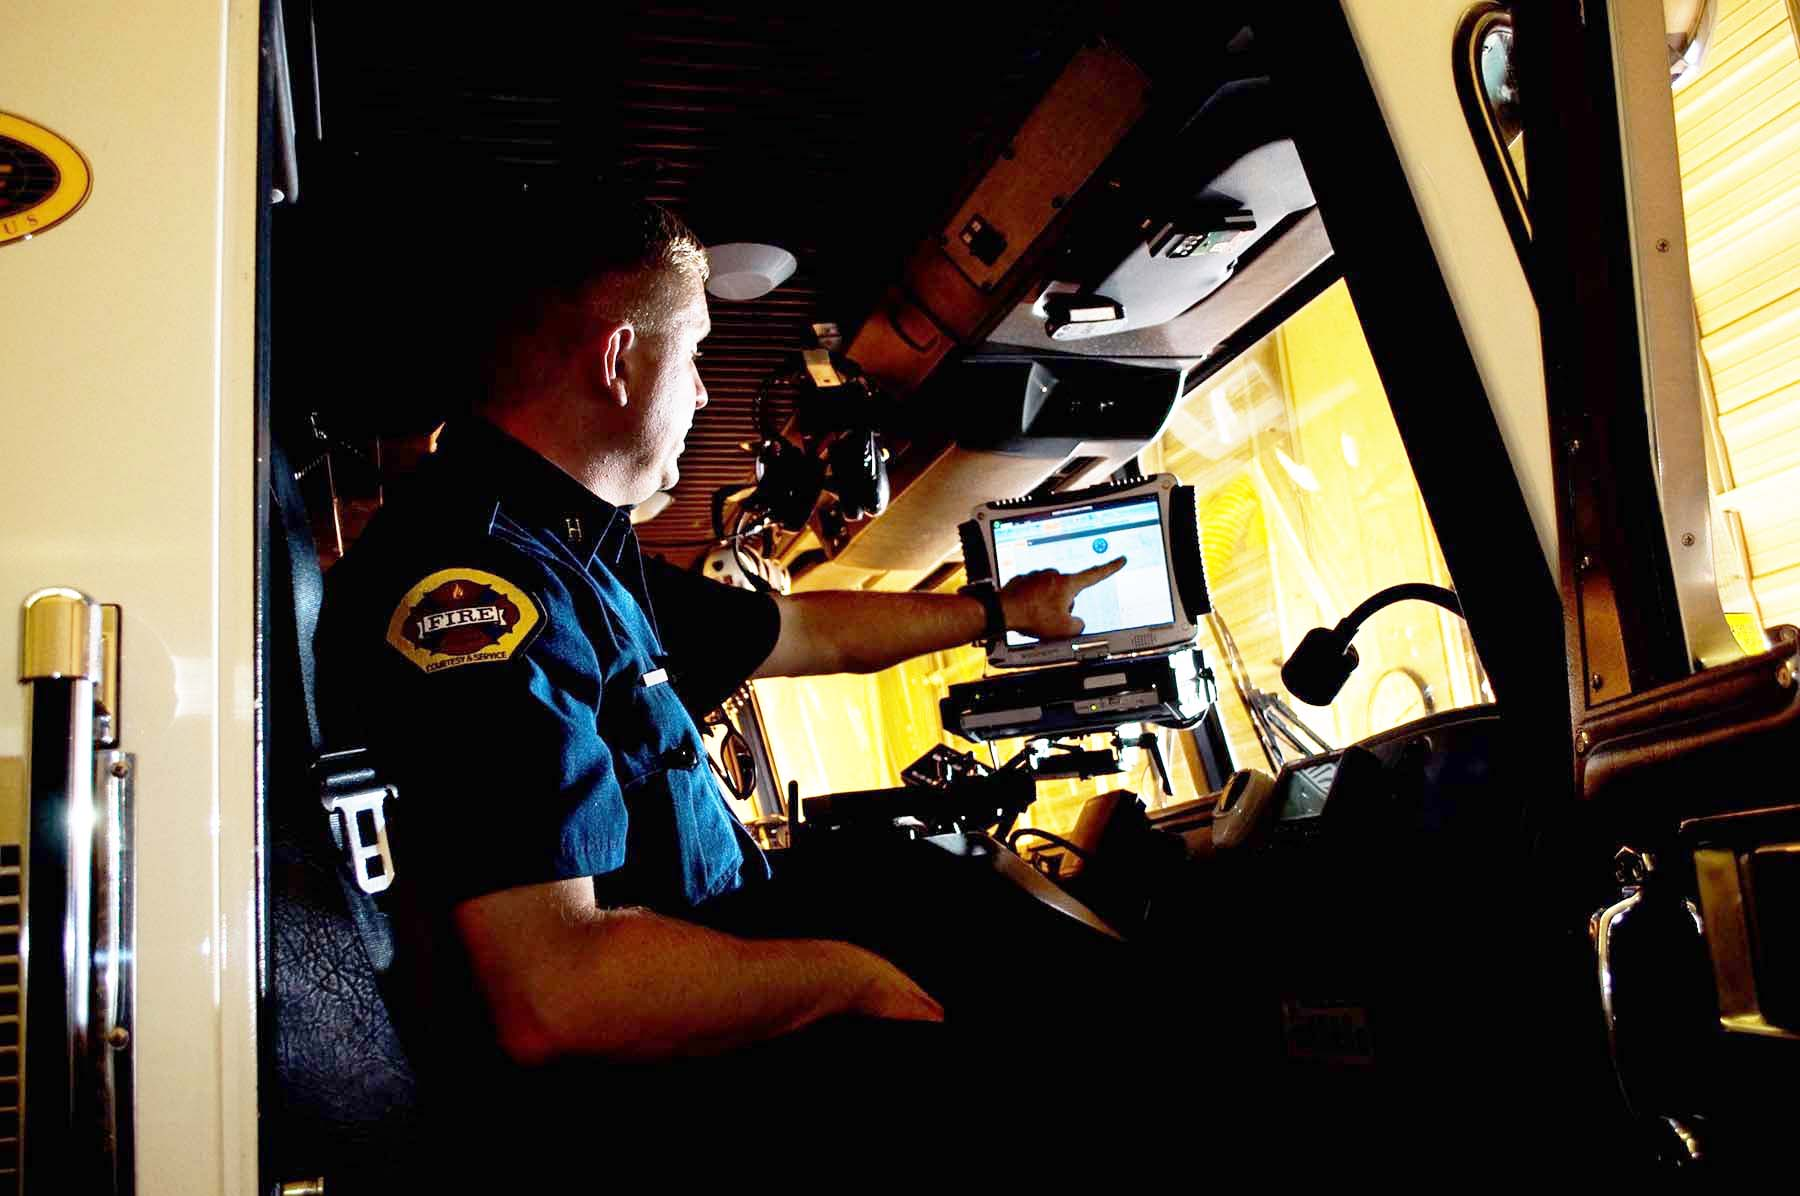 firefighter looking at a computer screen in an apparatus cab